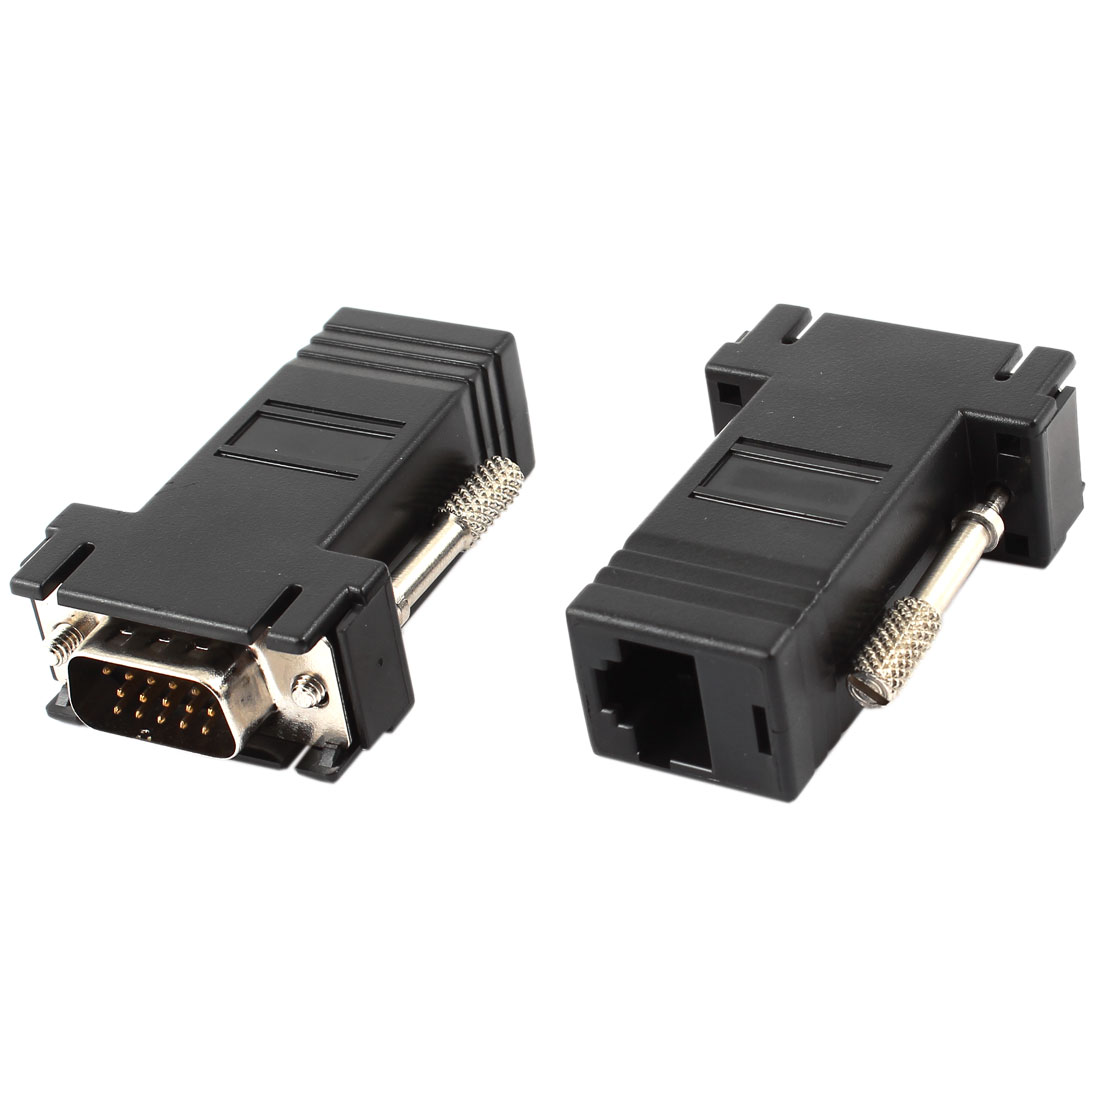 Computer VGA 15 Pin HD15 Male to RJ45 Female Connector Adapter Black 2pcs